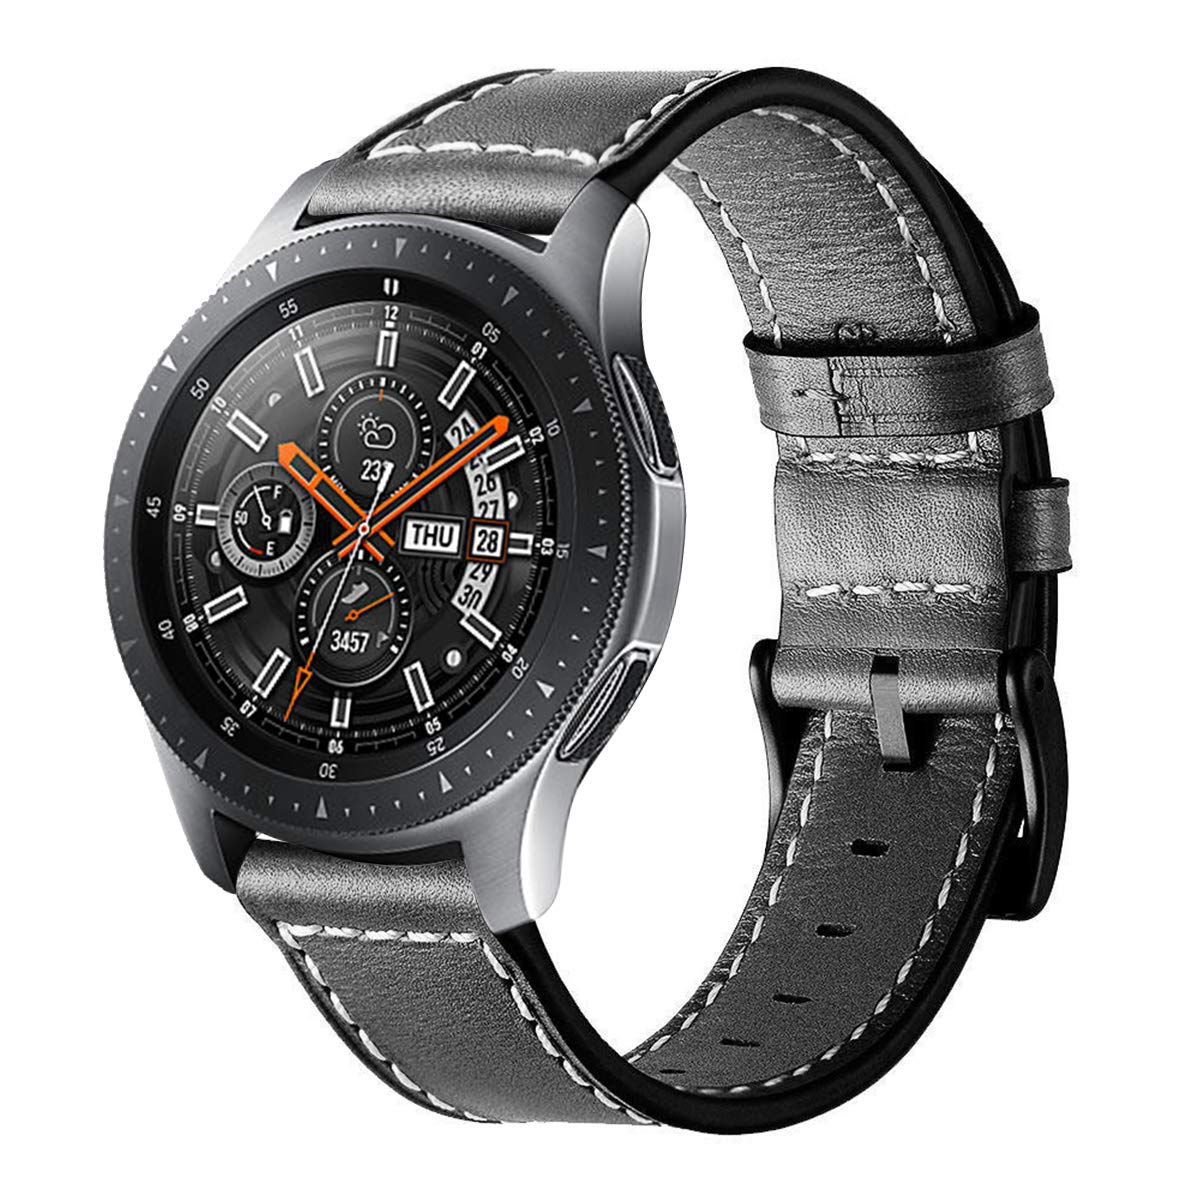 Circle Compatible with Samsung Galaxy Watch 46mm Strap,22mm Leather Strap for Galaxy Watch 46mm